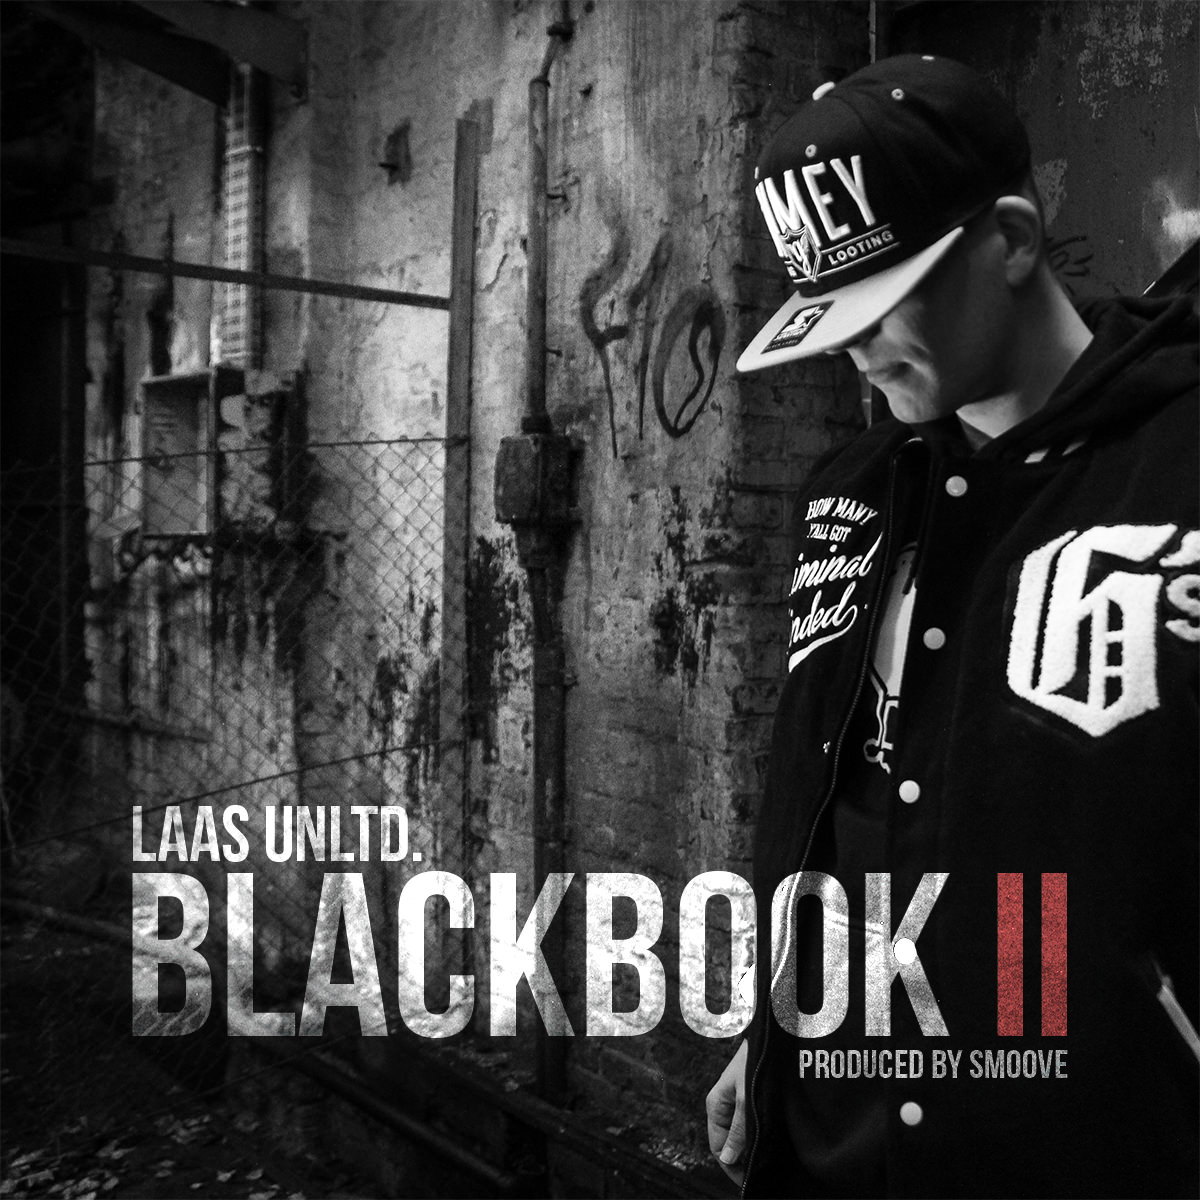 Laas Unltd - Blackbook 2 Album Cover